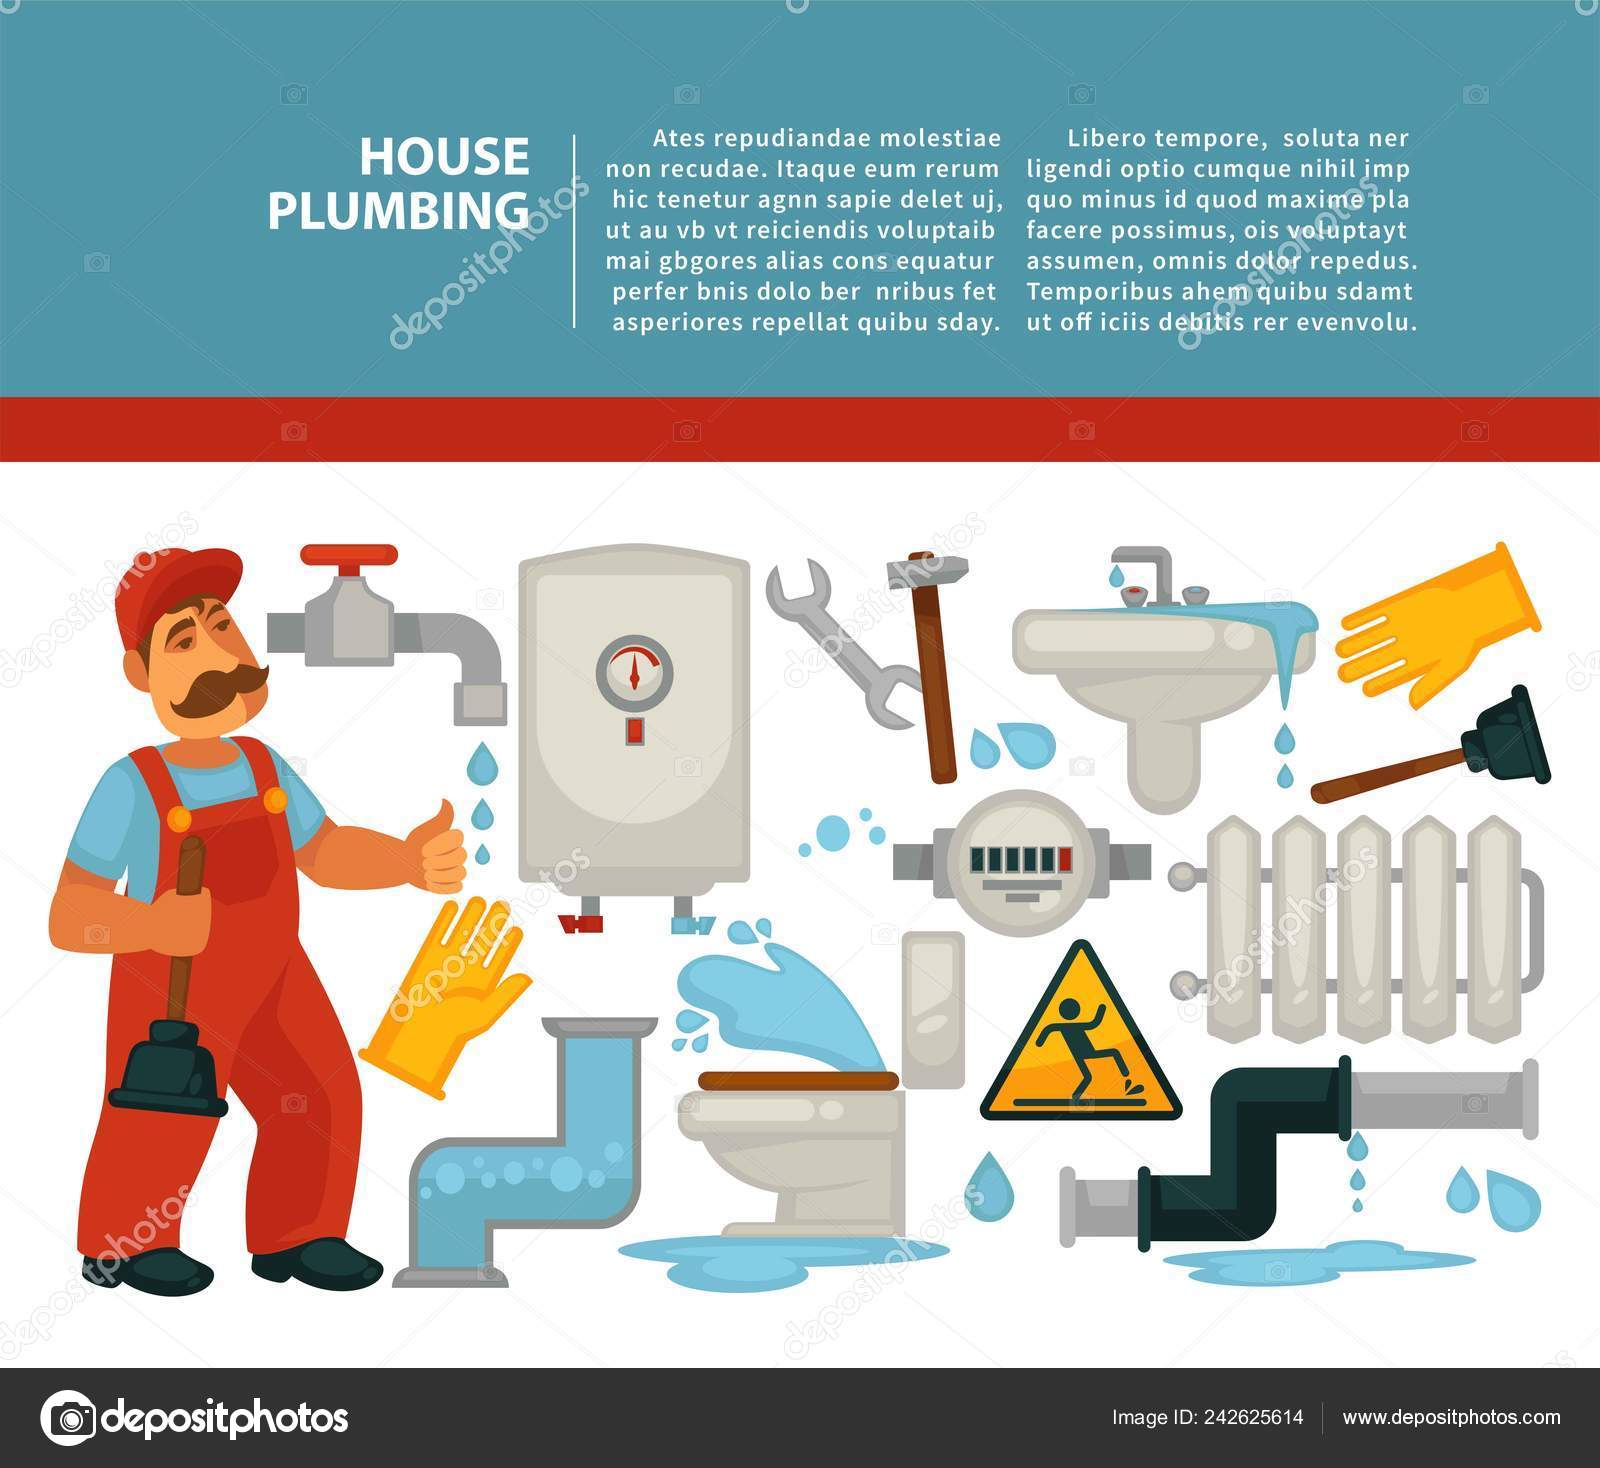 Plumber Services House Plumbing Bathroom Piping Vector Tap Pipe